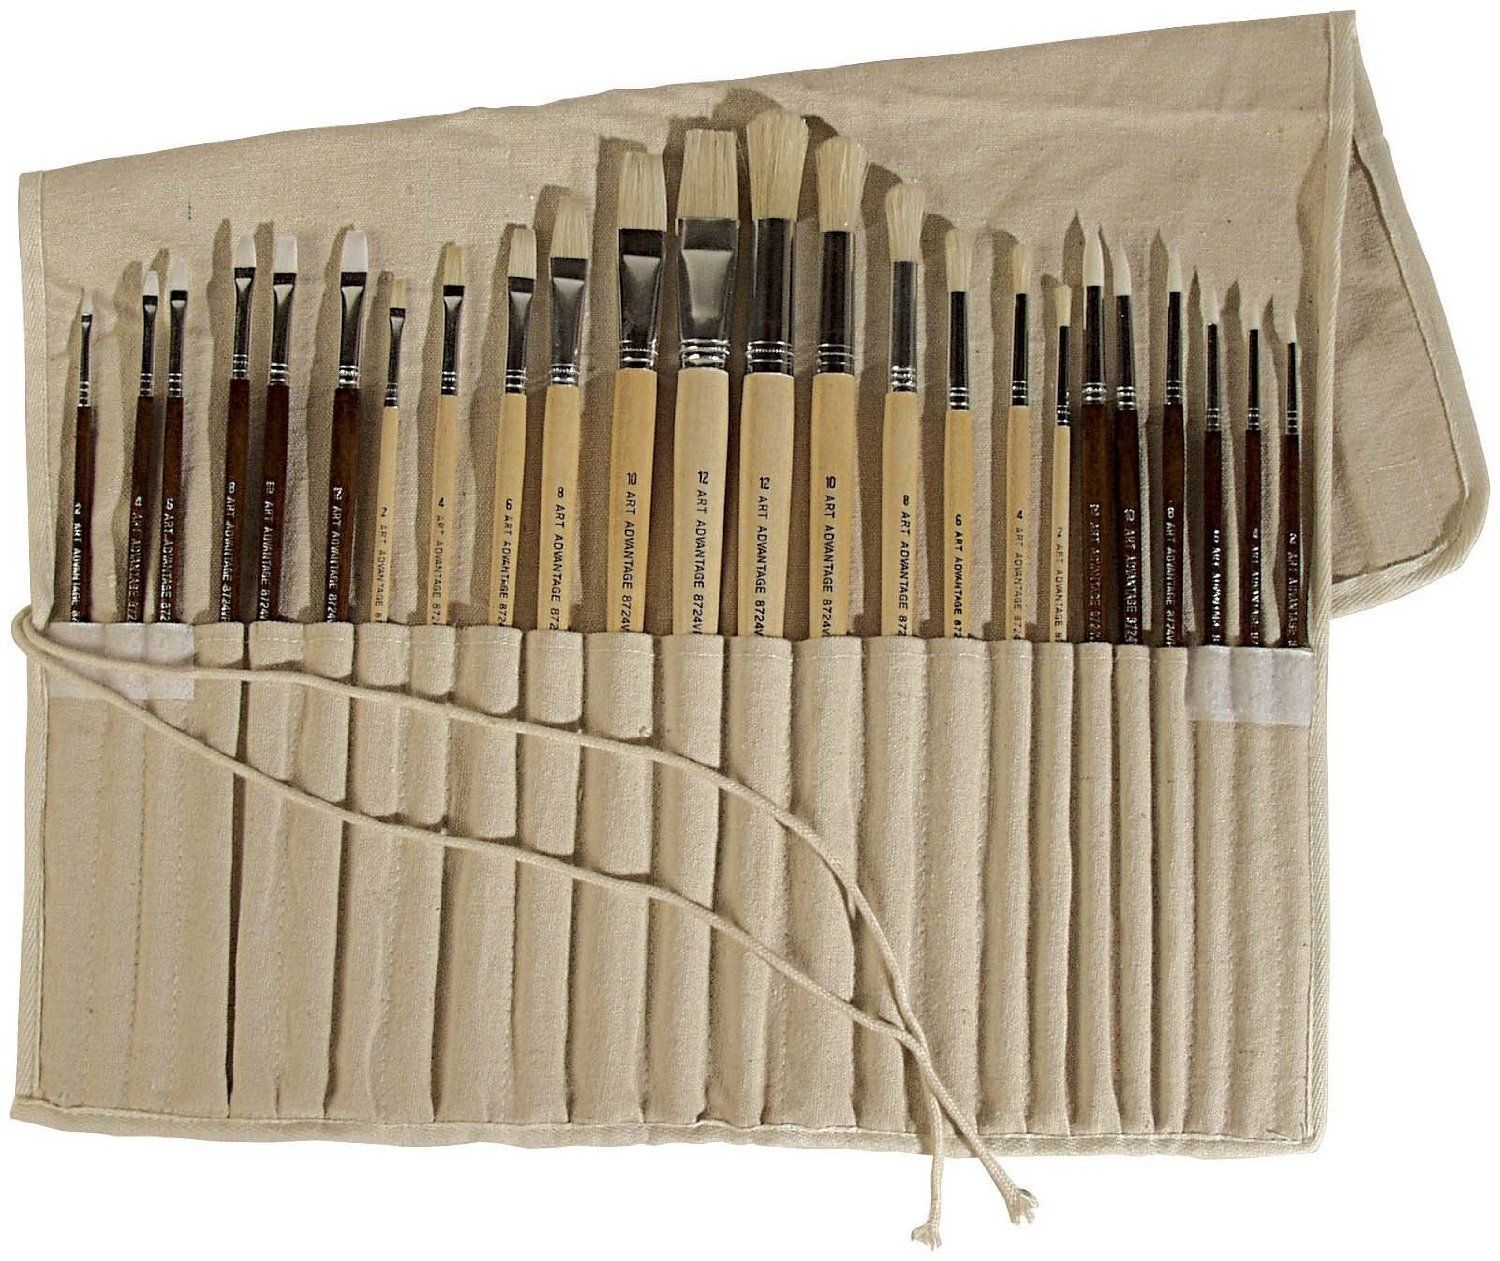 Art Advantage Oil and Acrylic Brush Set, 24-Piece This inc… | Travel ...